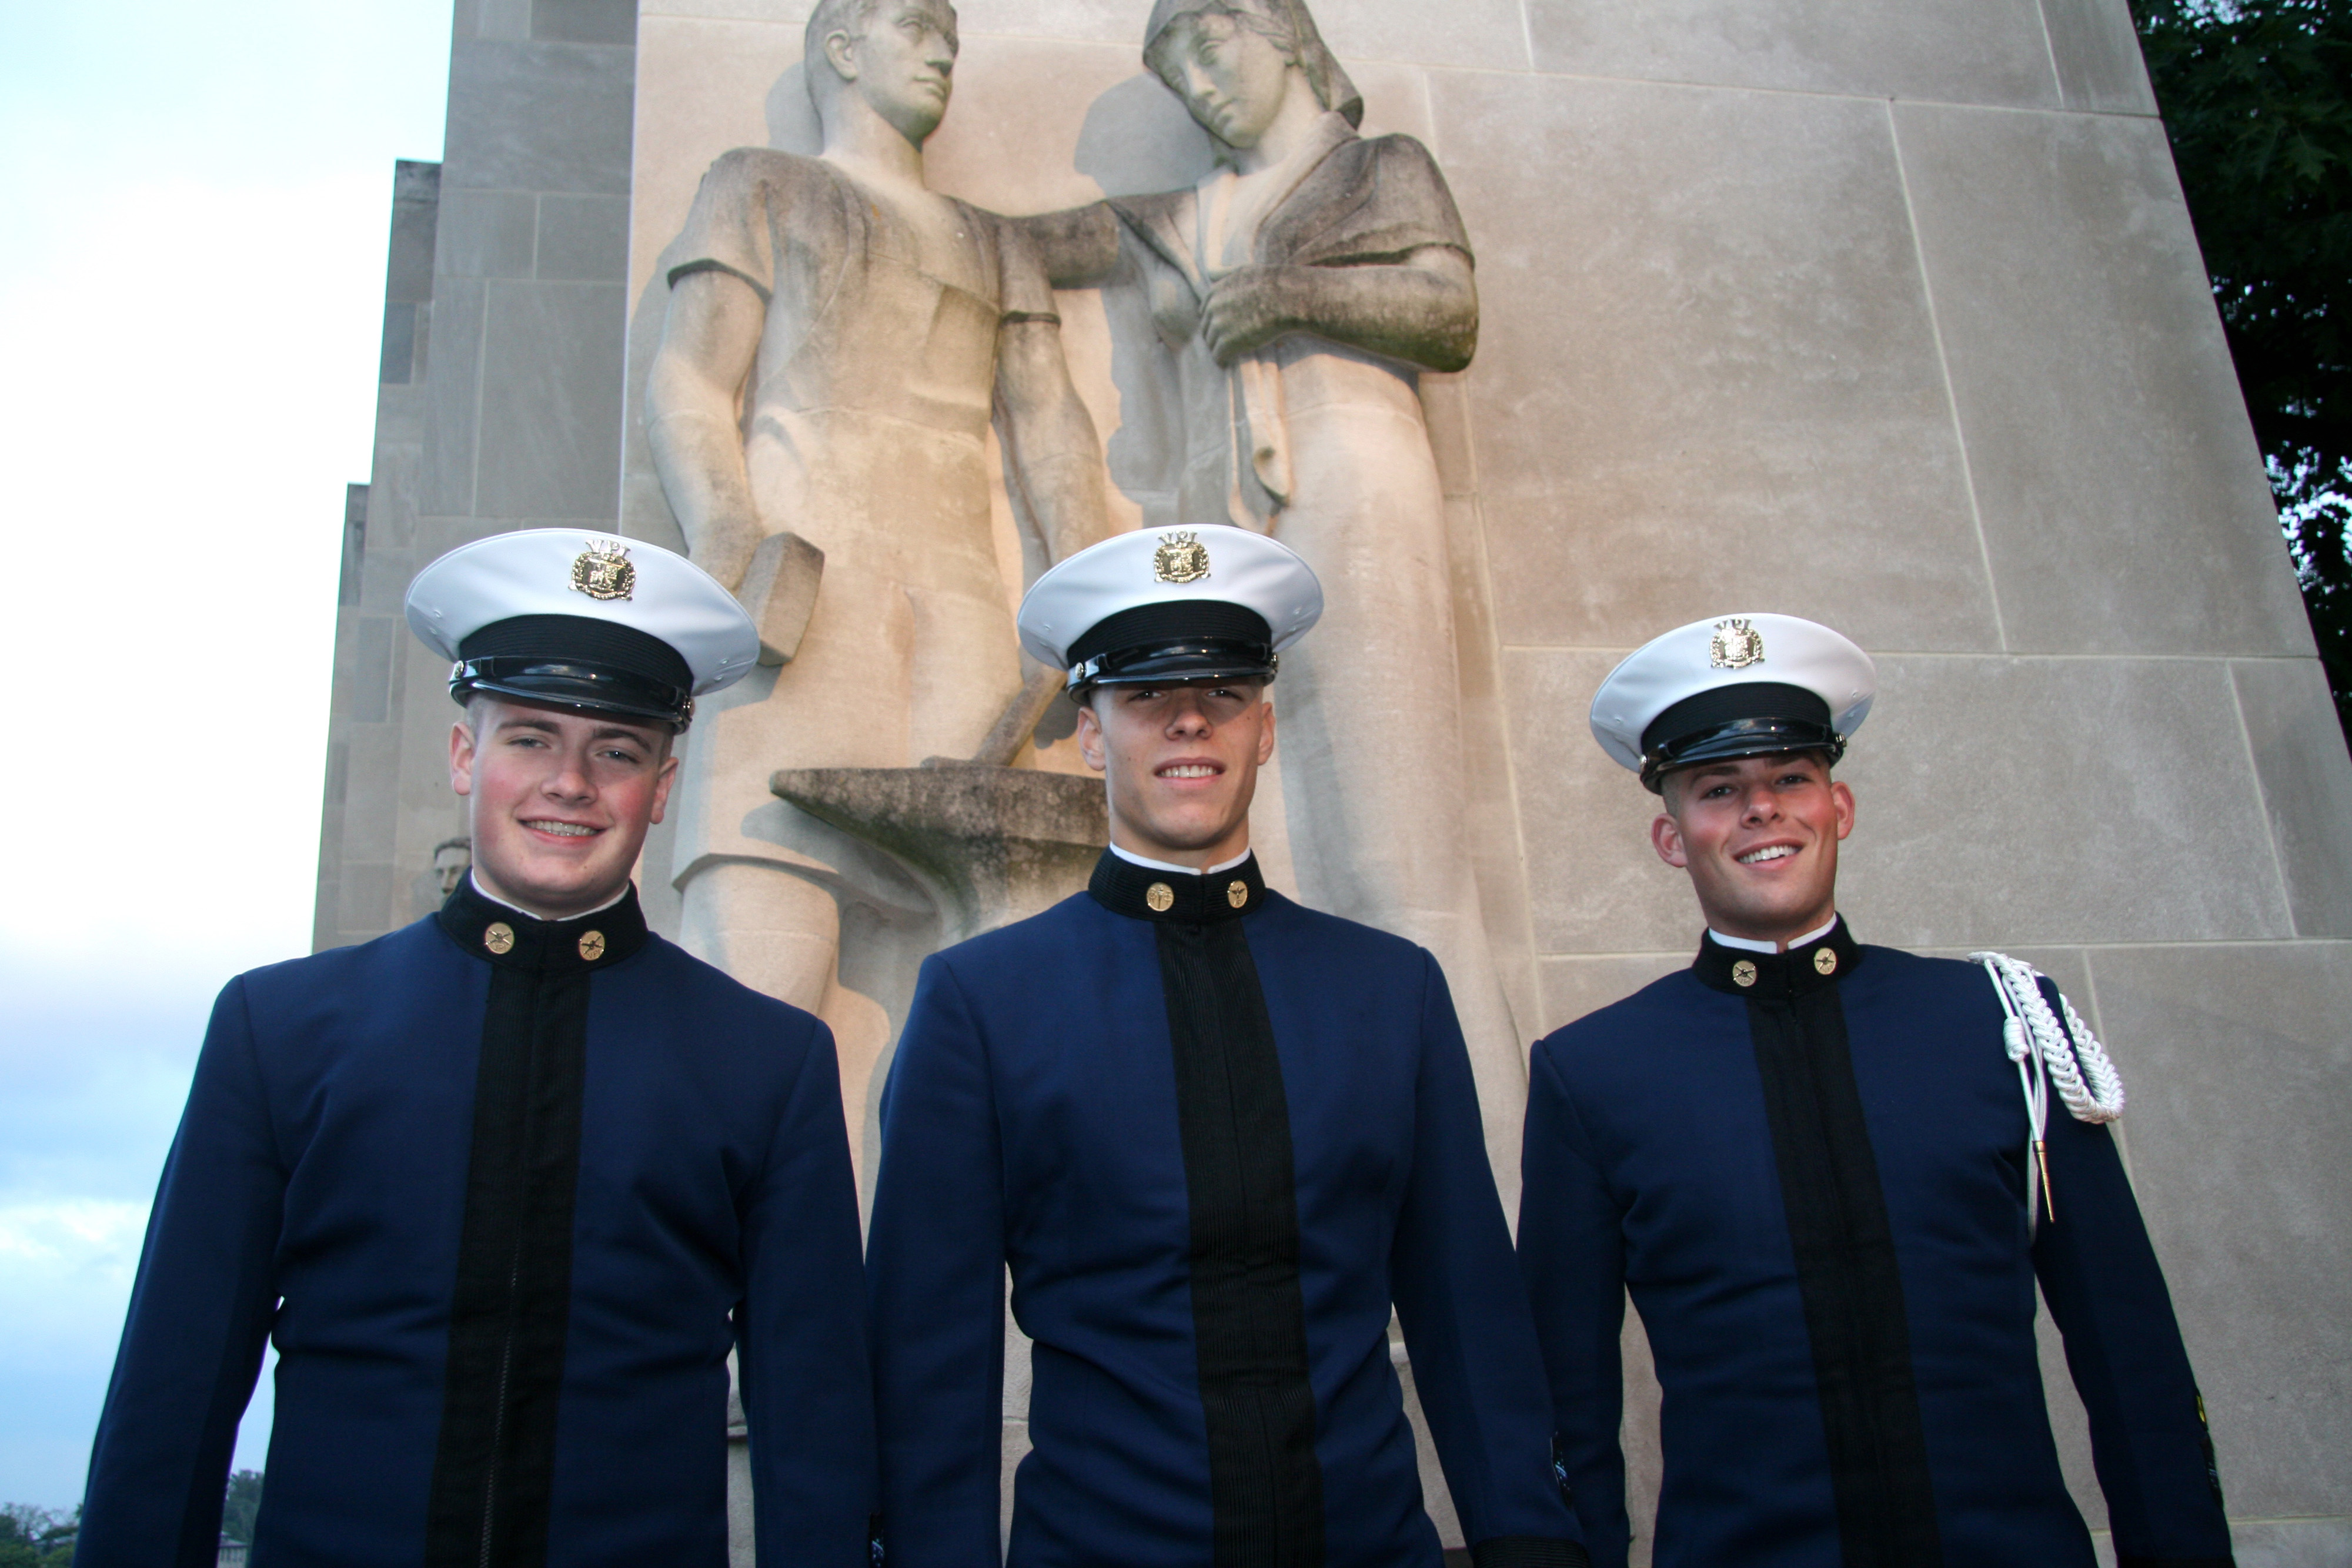 From left to right are Cadets Brendan Blawie, Ian Marble, and Alexander Zuchowicz